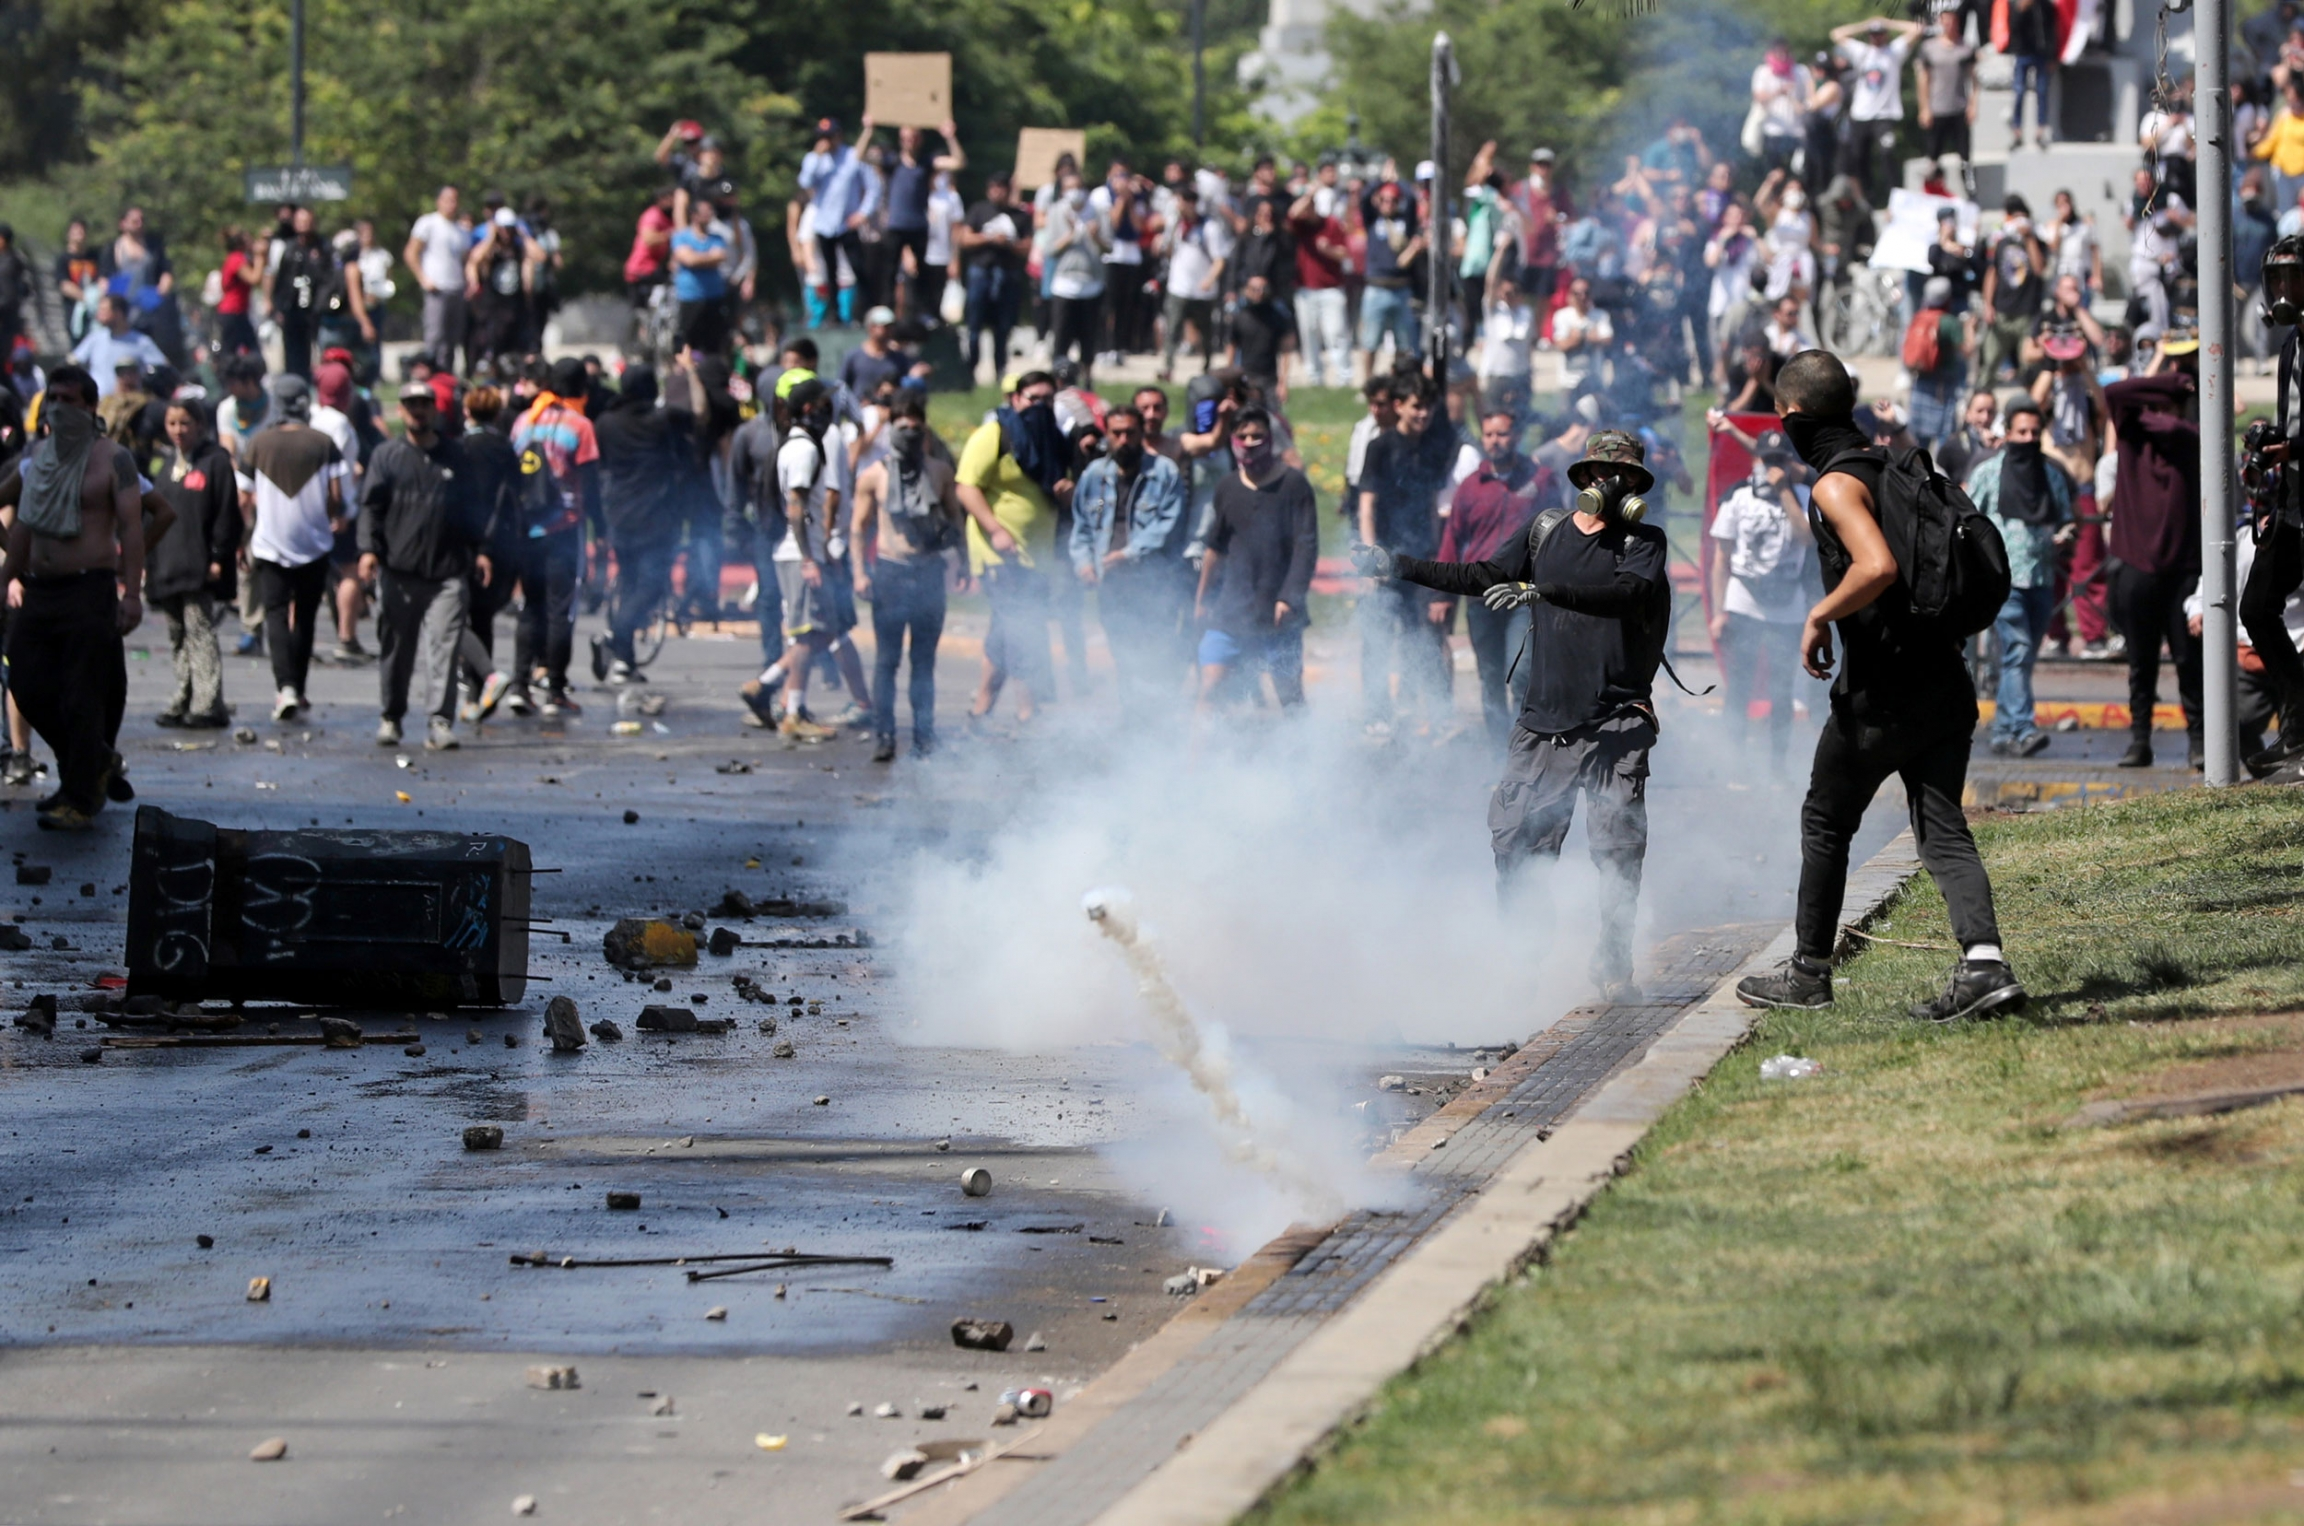 A large group of protesters are shown in the street with a smoking tear gas canister bouncing through the middle of the group.